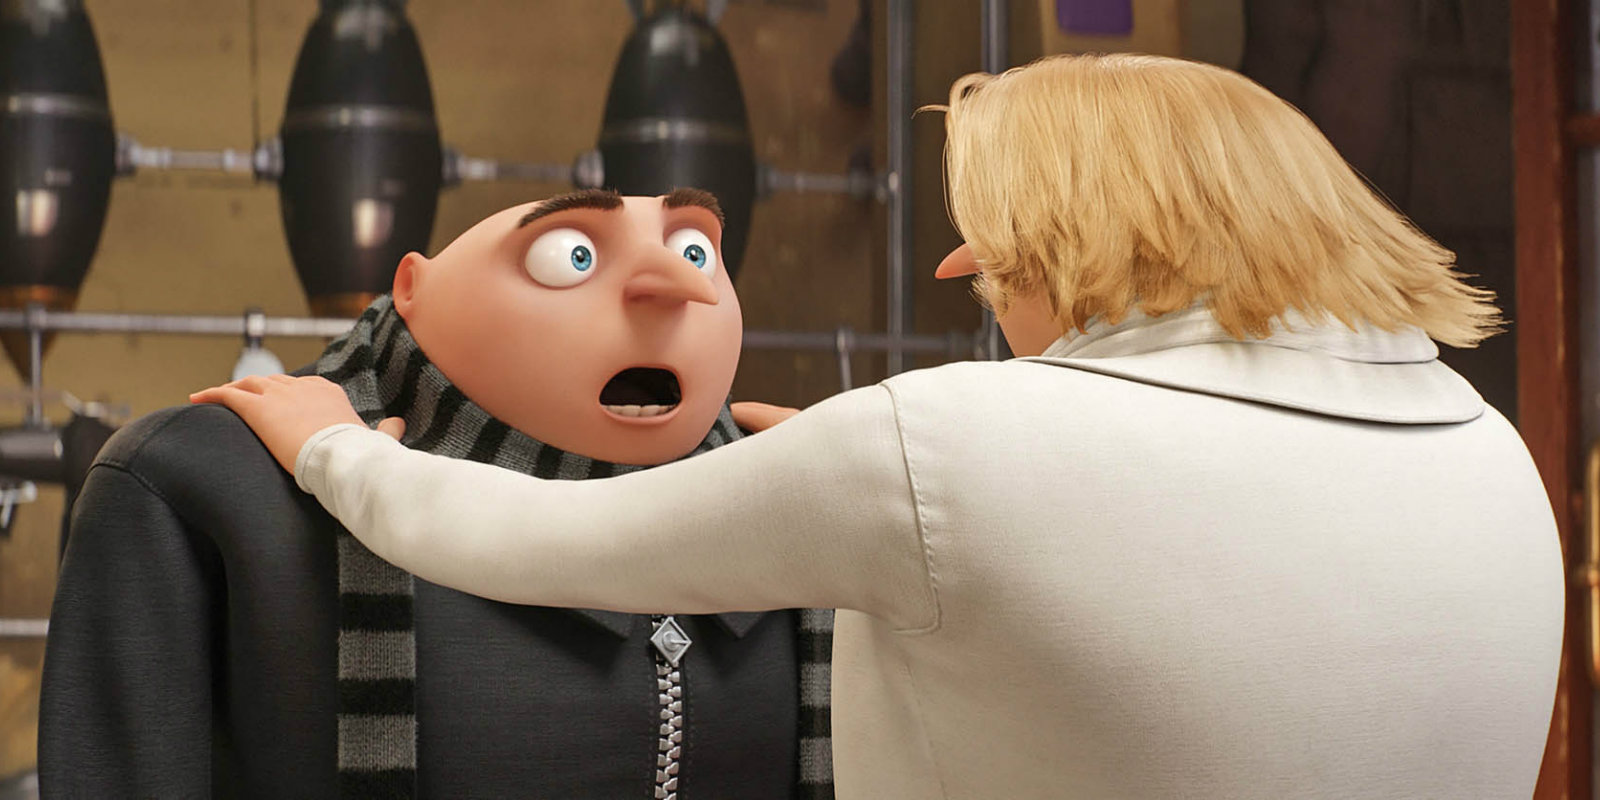 'Despicable Me 3' is a disjointed film that sacrifices story for wider appeal